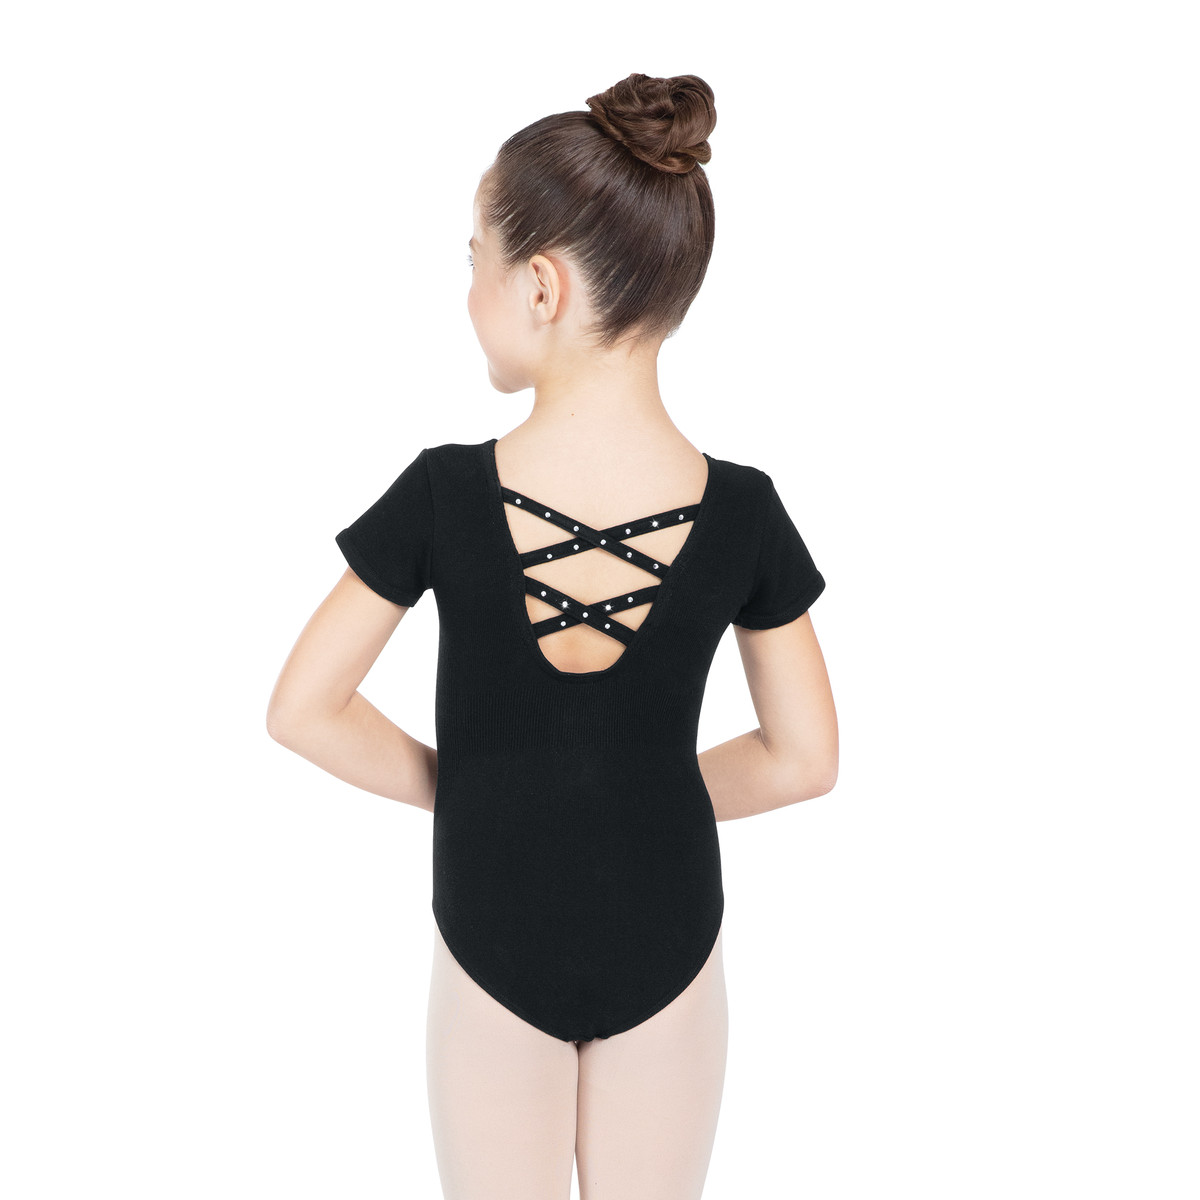 Seamless Rhinestone Crisscross Back Leotard